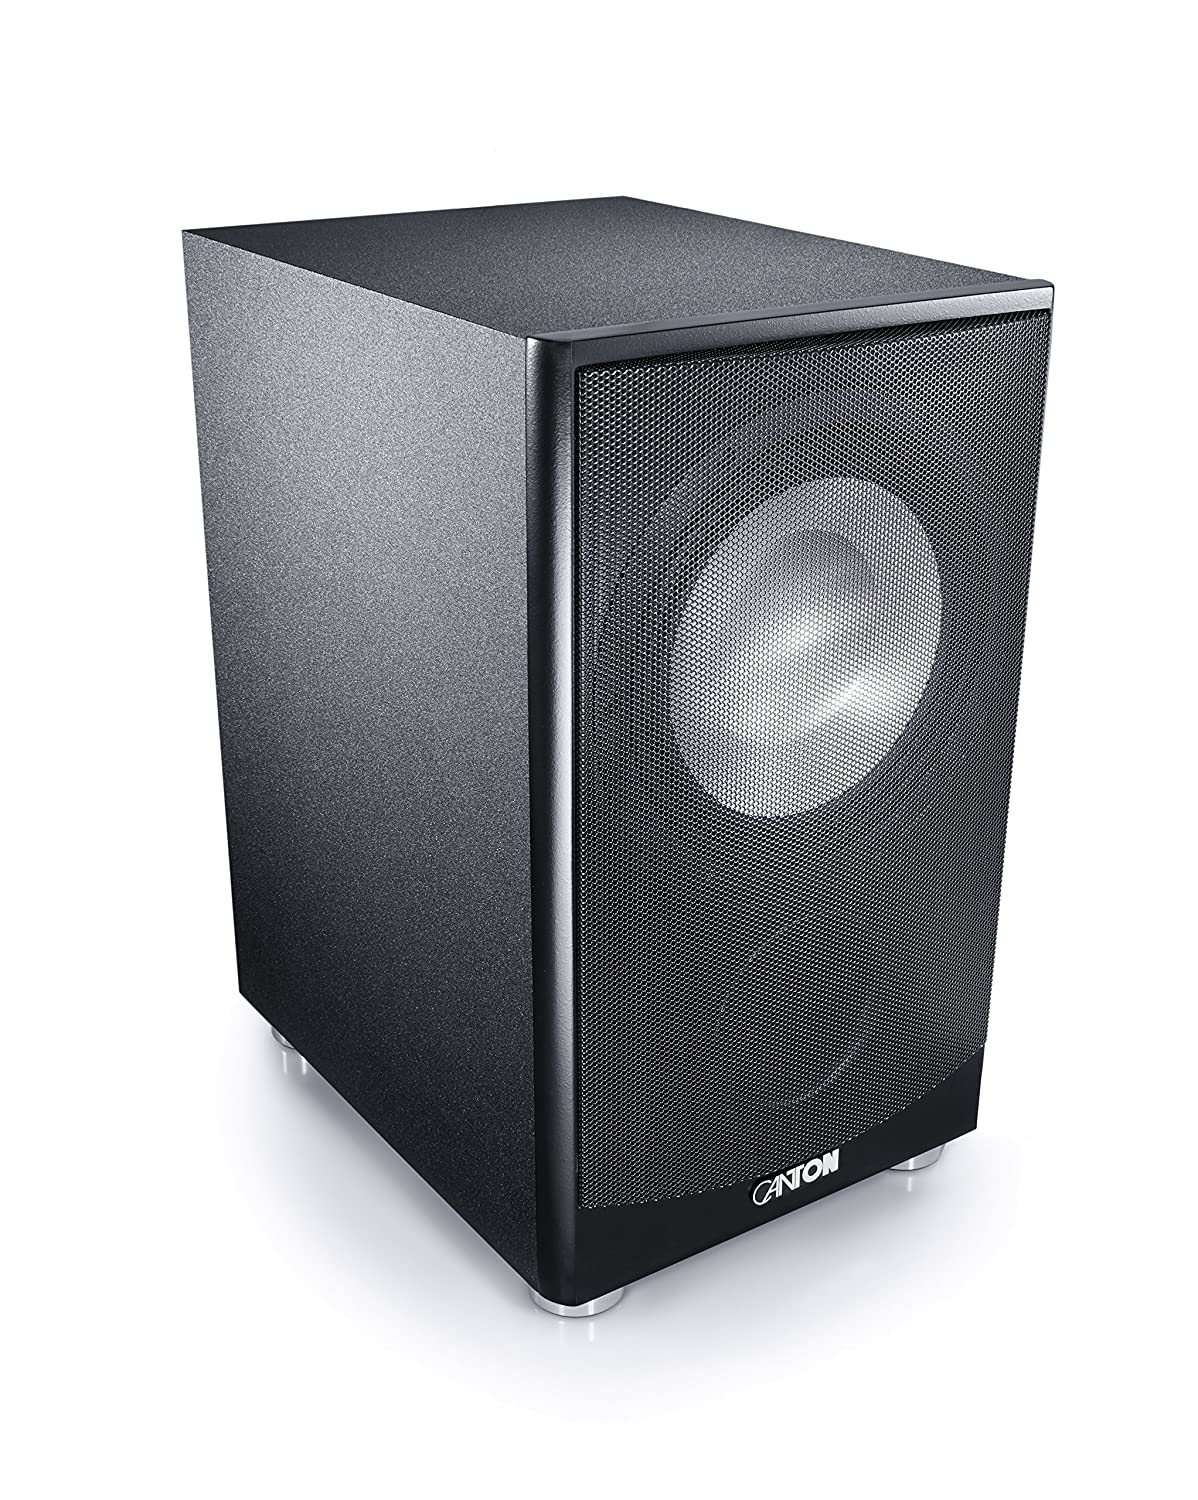 Canton AS 85.2 SC aktiver Subwoofer, Canton AS 85.2 SC, Canton AS 85.2 SC Test, Canton AS 85.2 SC kaufen